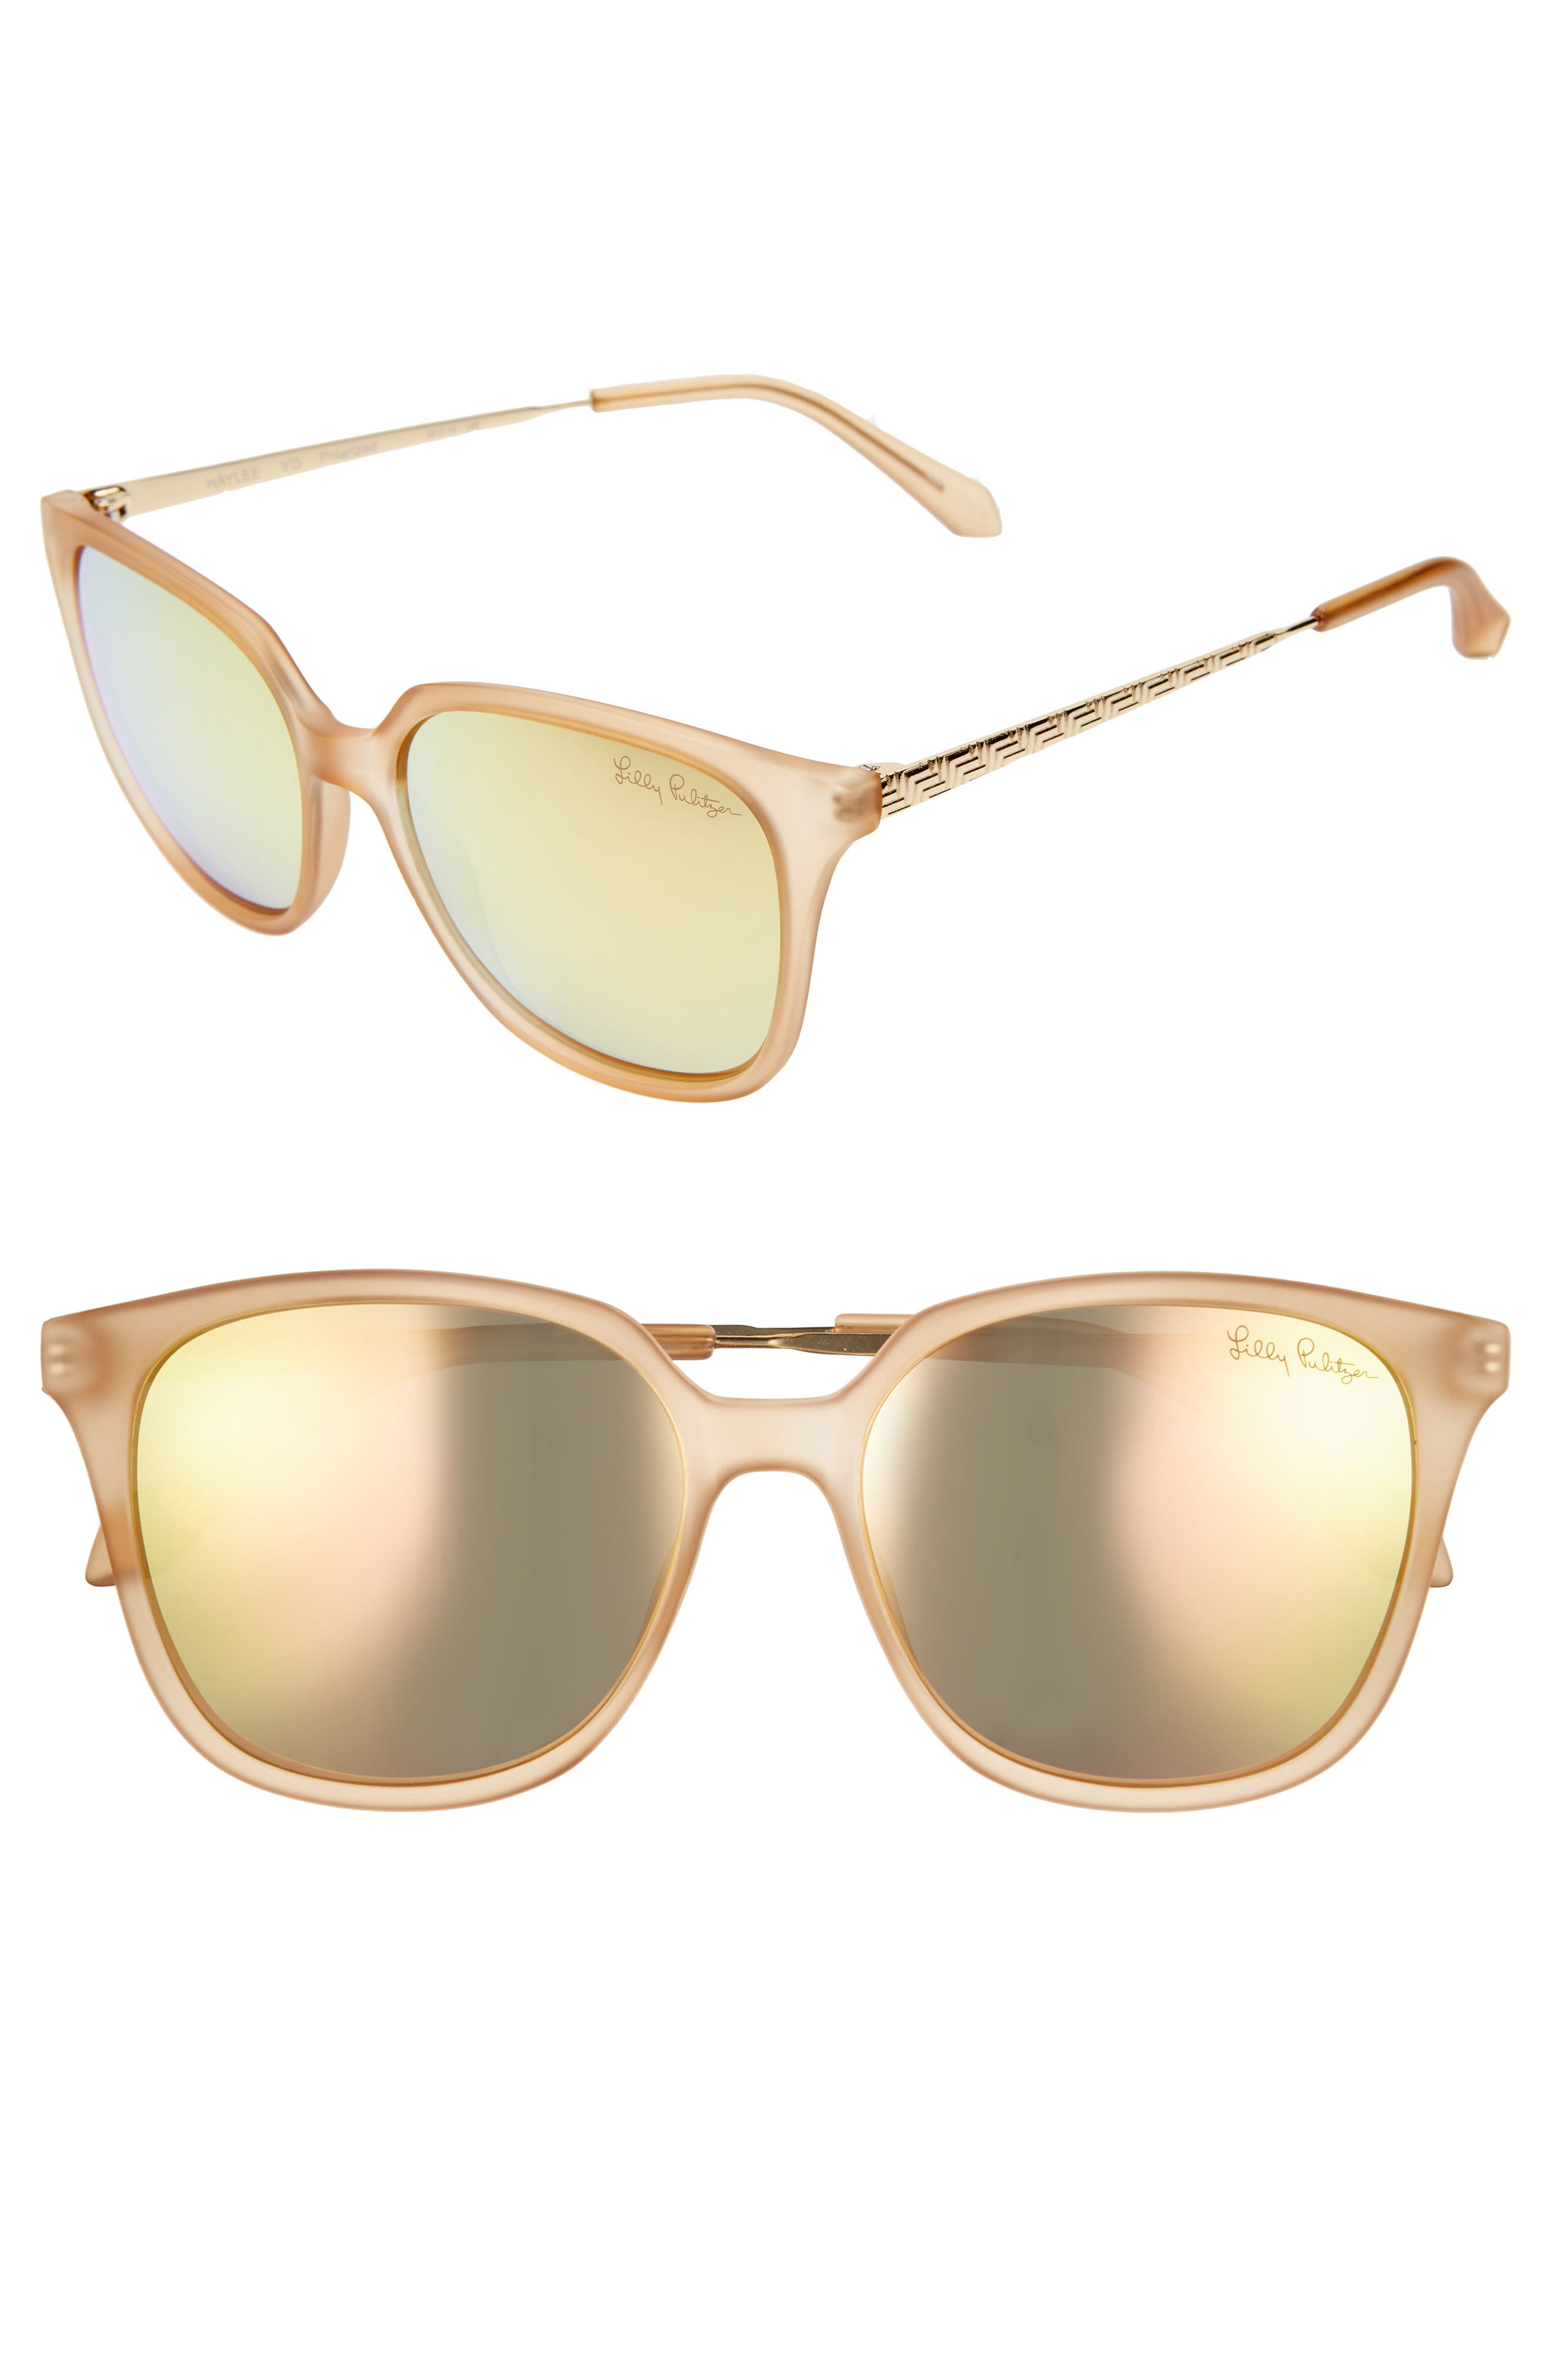 Lilly Pulitzer Haylee 5m Sunglasses - Matte Crystal Gold/ Gold